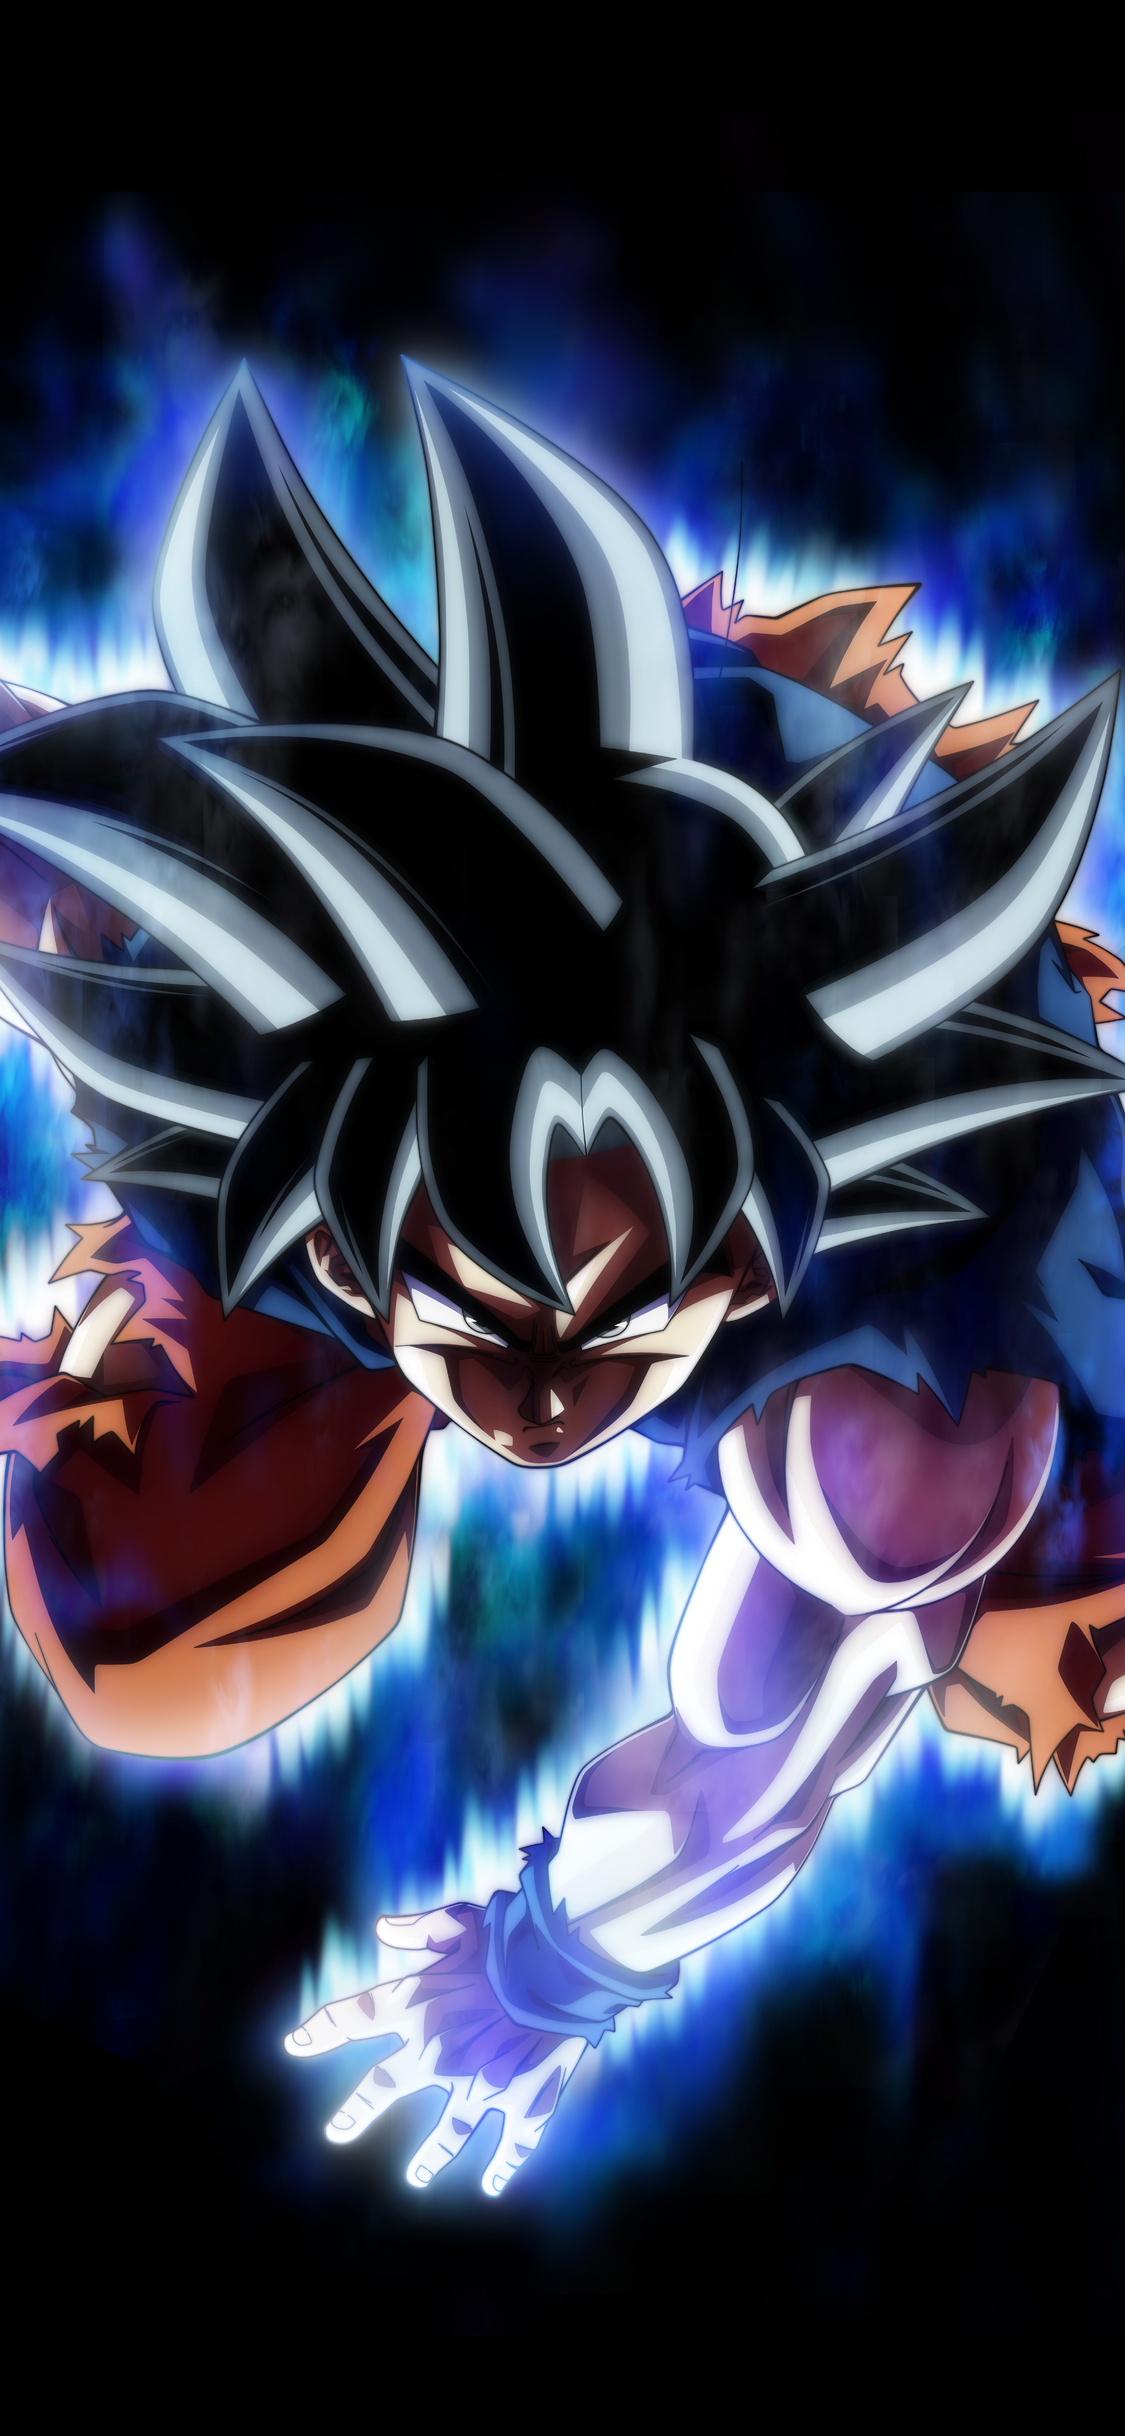 Wallpapers and backgrounds dragon ball z edition. 1125x2436 Goku Dragon Ball Super 10k Iphone XS,Iphone 10 ...